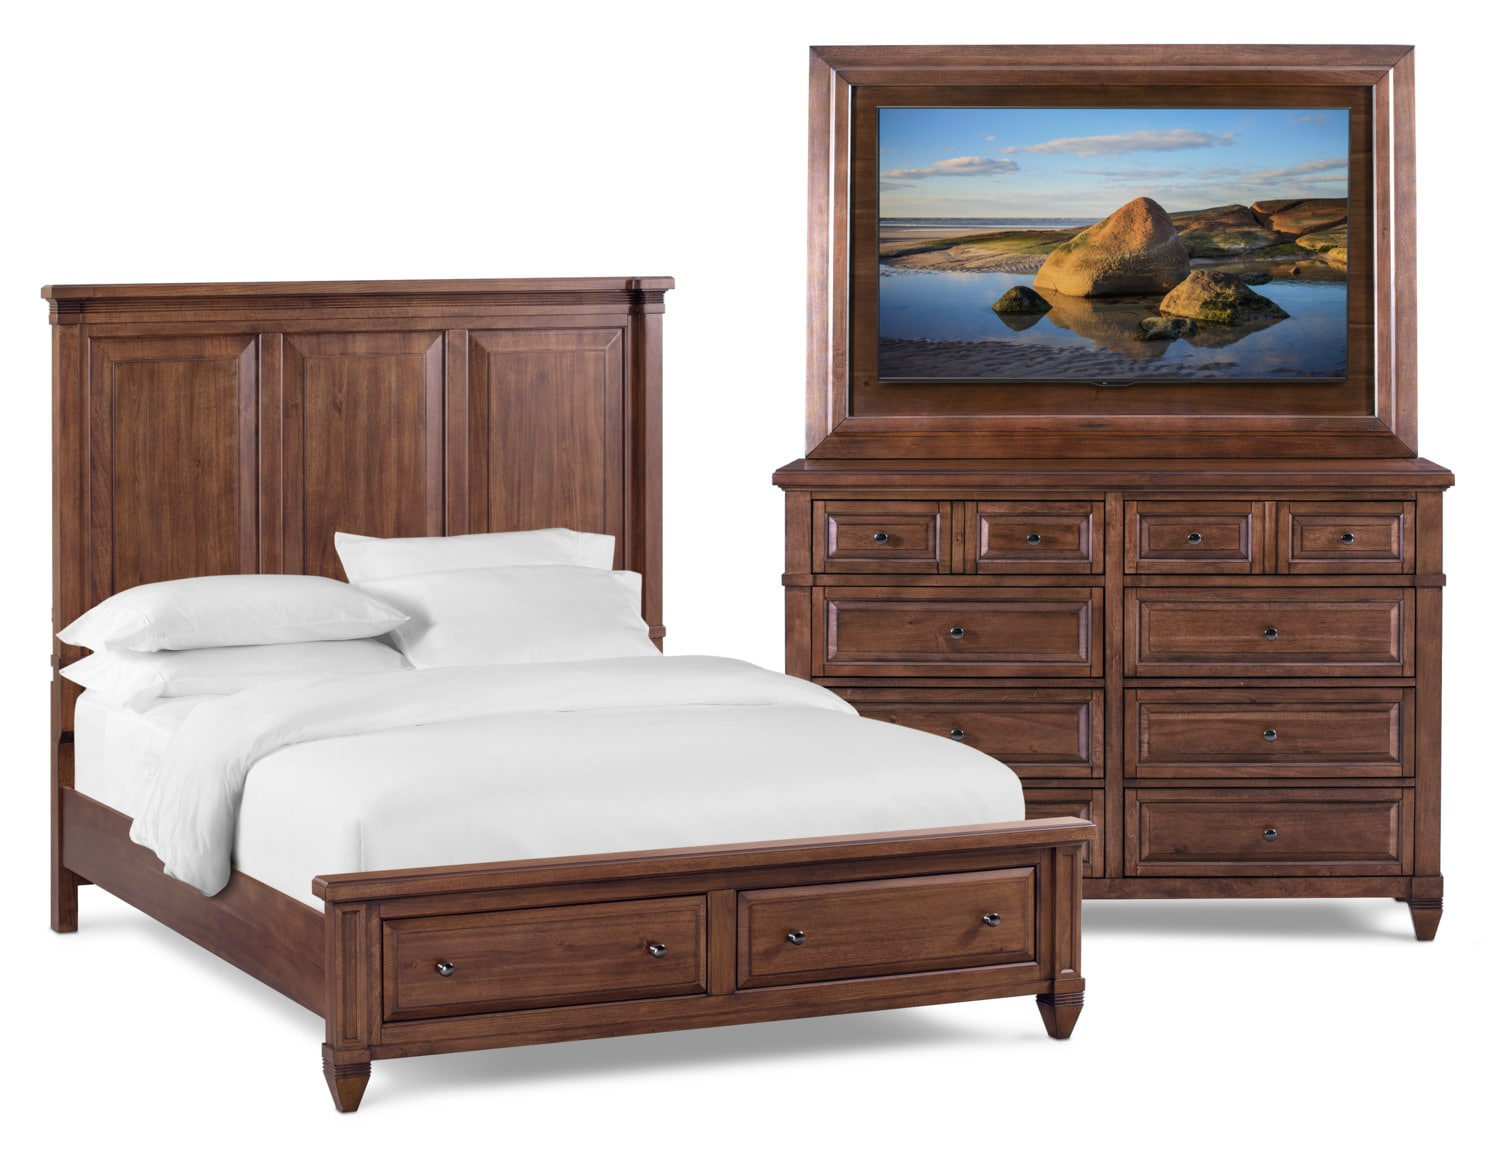 Bedroom Furniture - Rosalie 5-Piece Storage Bedroom Set with Dresser and TV Mount